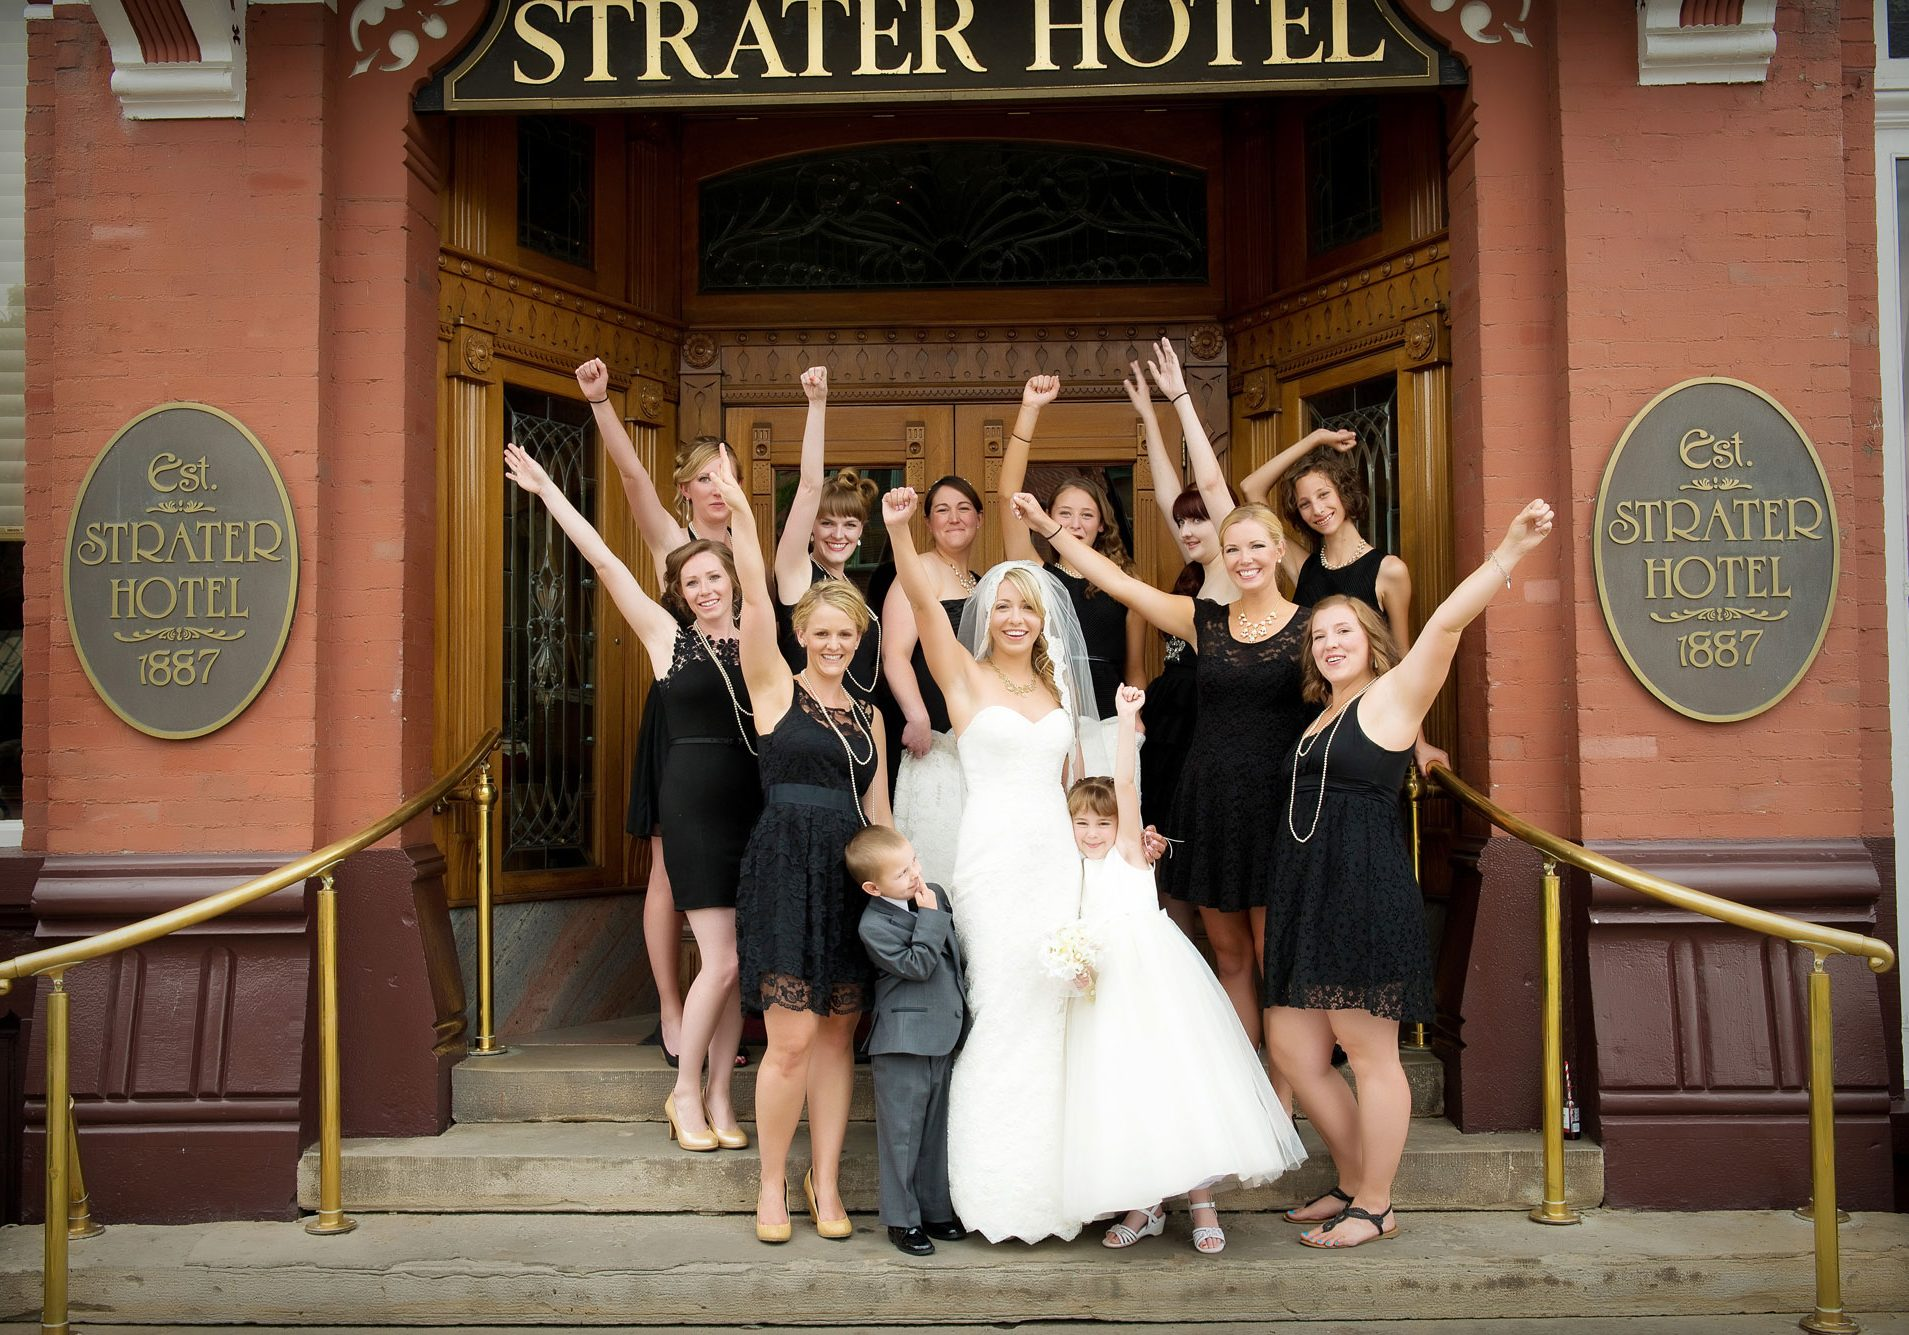 Strater Hotel Weddings, Durango, Colorado